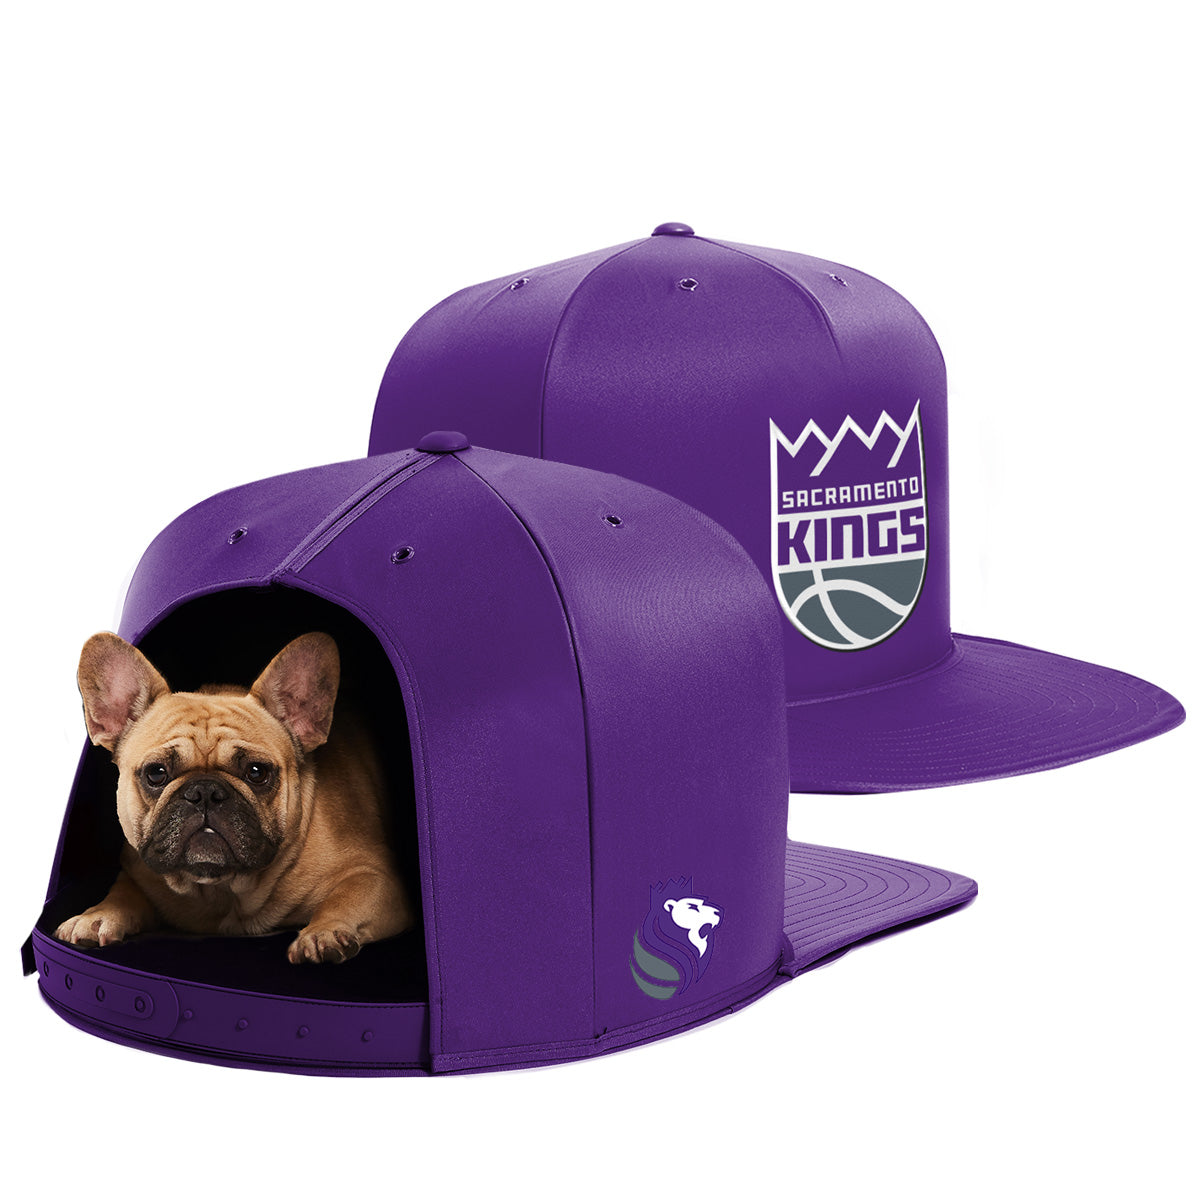 Nap Cap - NBA - Sacramento Kings - Pet Bed